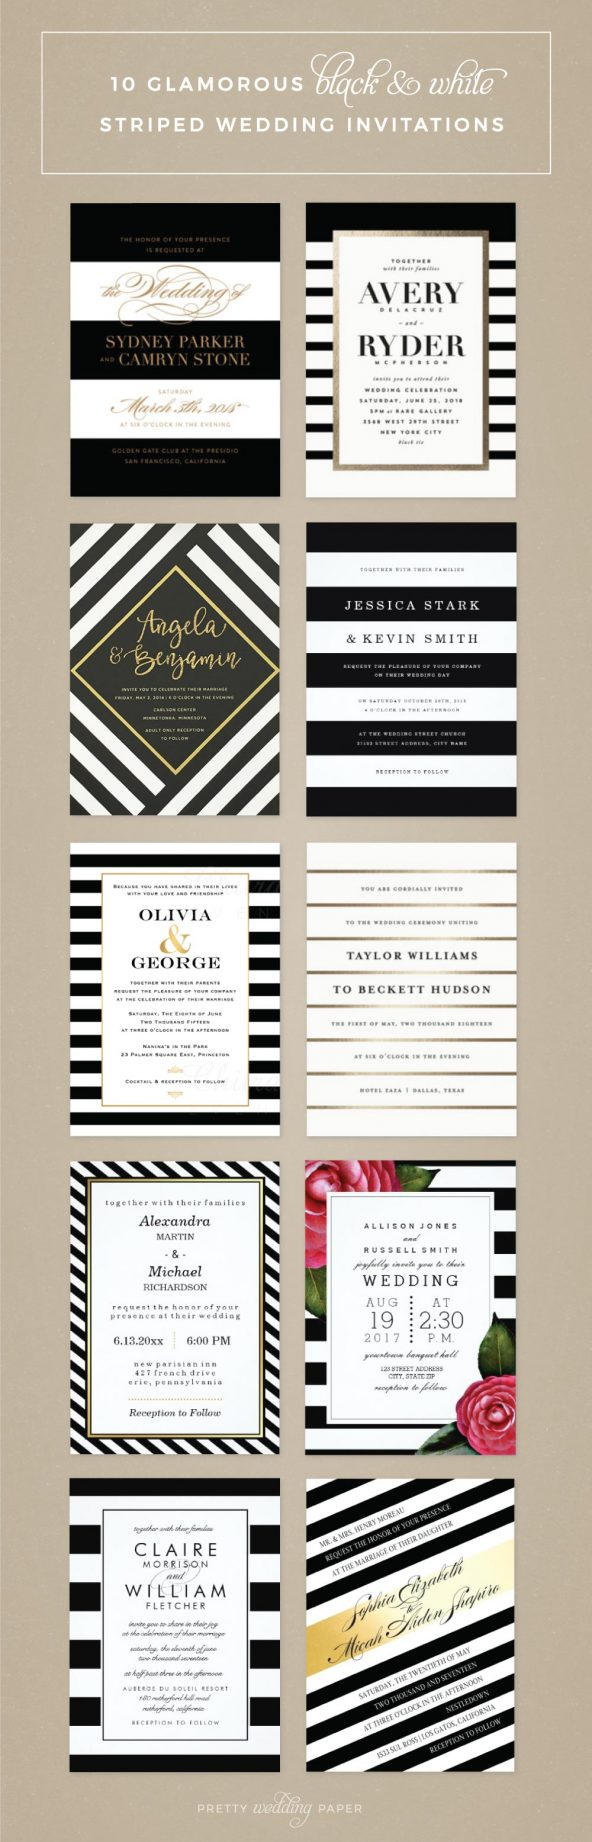 Glamorous black and white striped wedding invitations featuring designs from Minted, Wedding Paper Divas, Etsy and Zazzle. Black and gold invitations, floral designs, and simple black and white stripes are included.